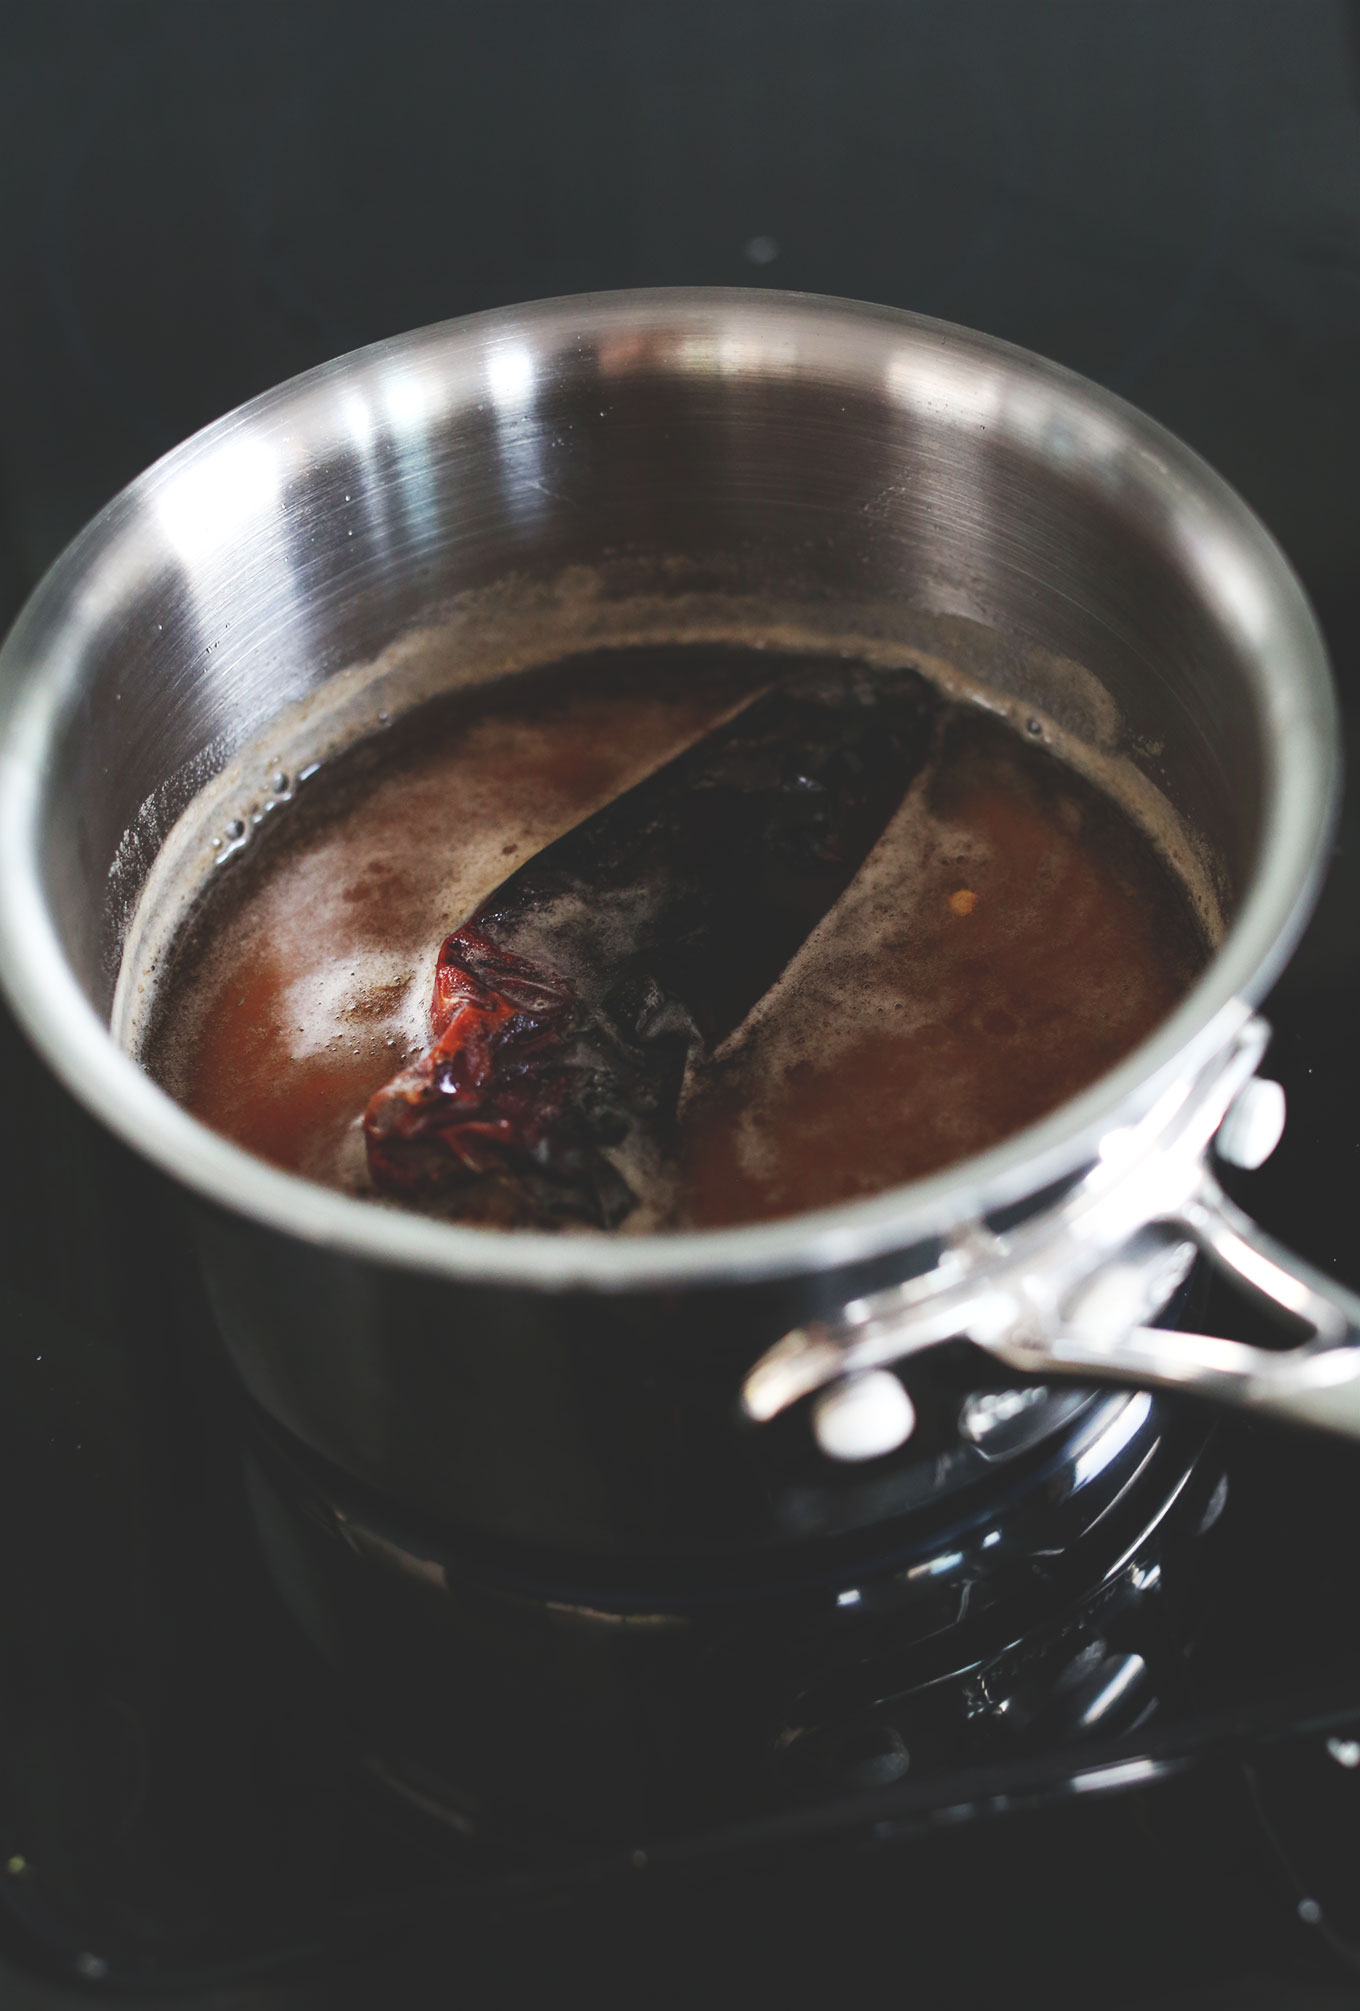 Making Cinnamon Chili Simple Syrup in a saucepan